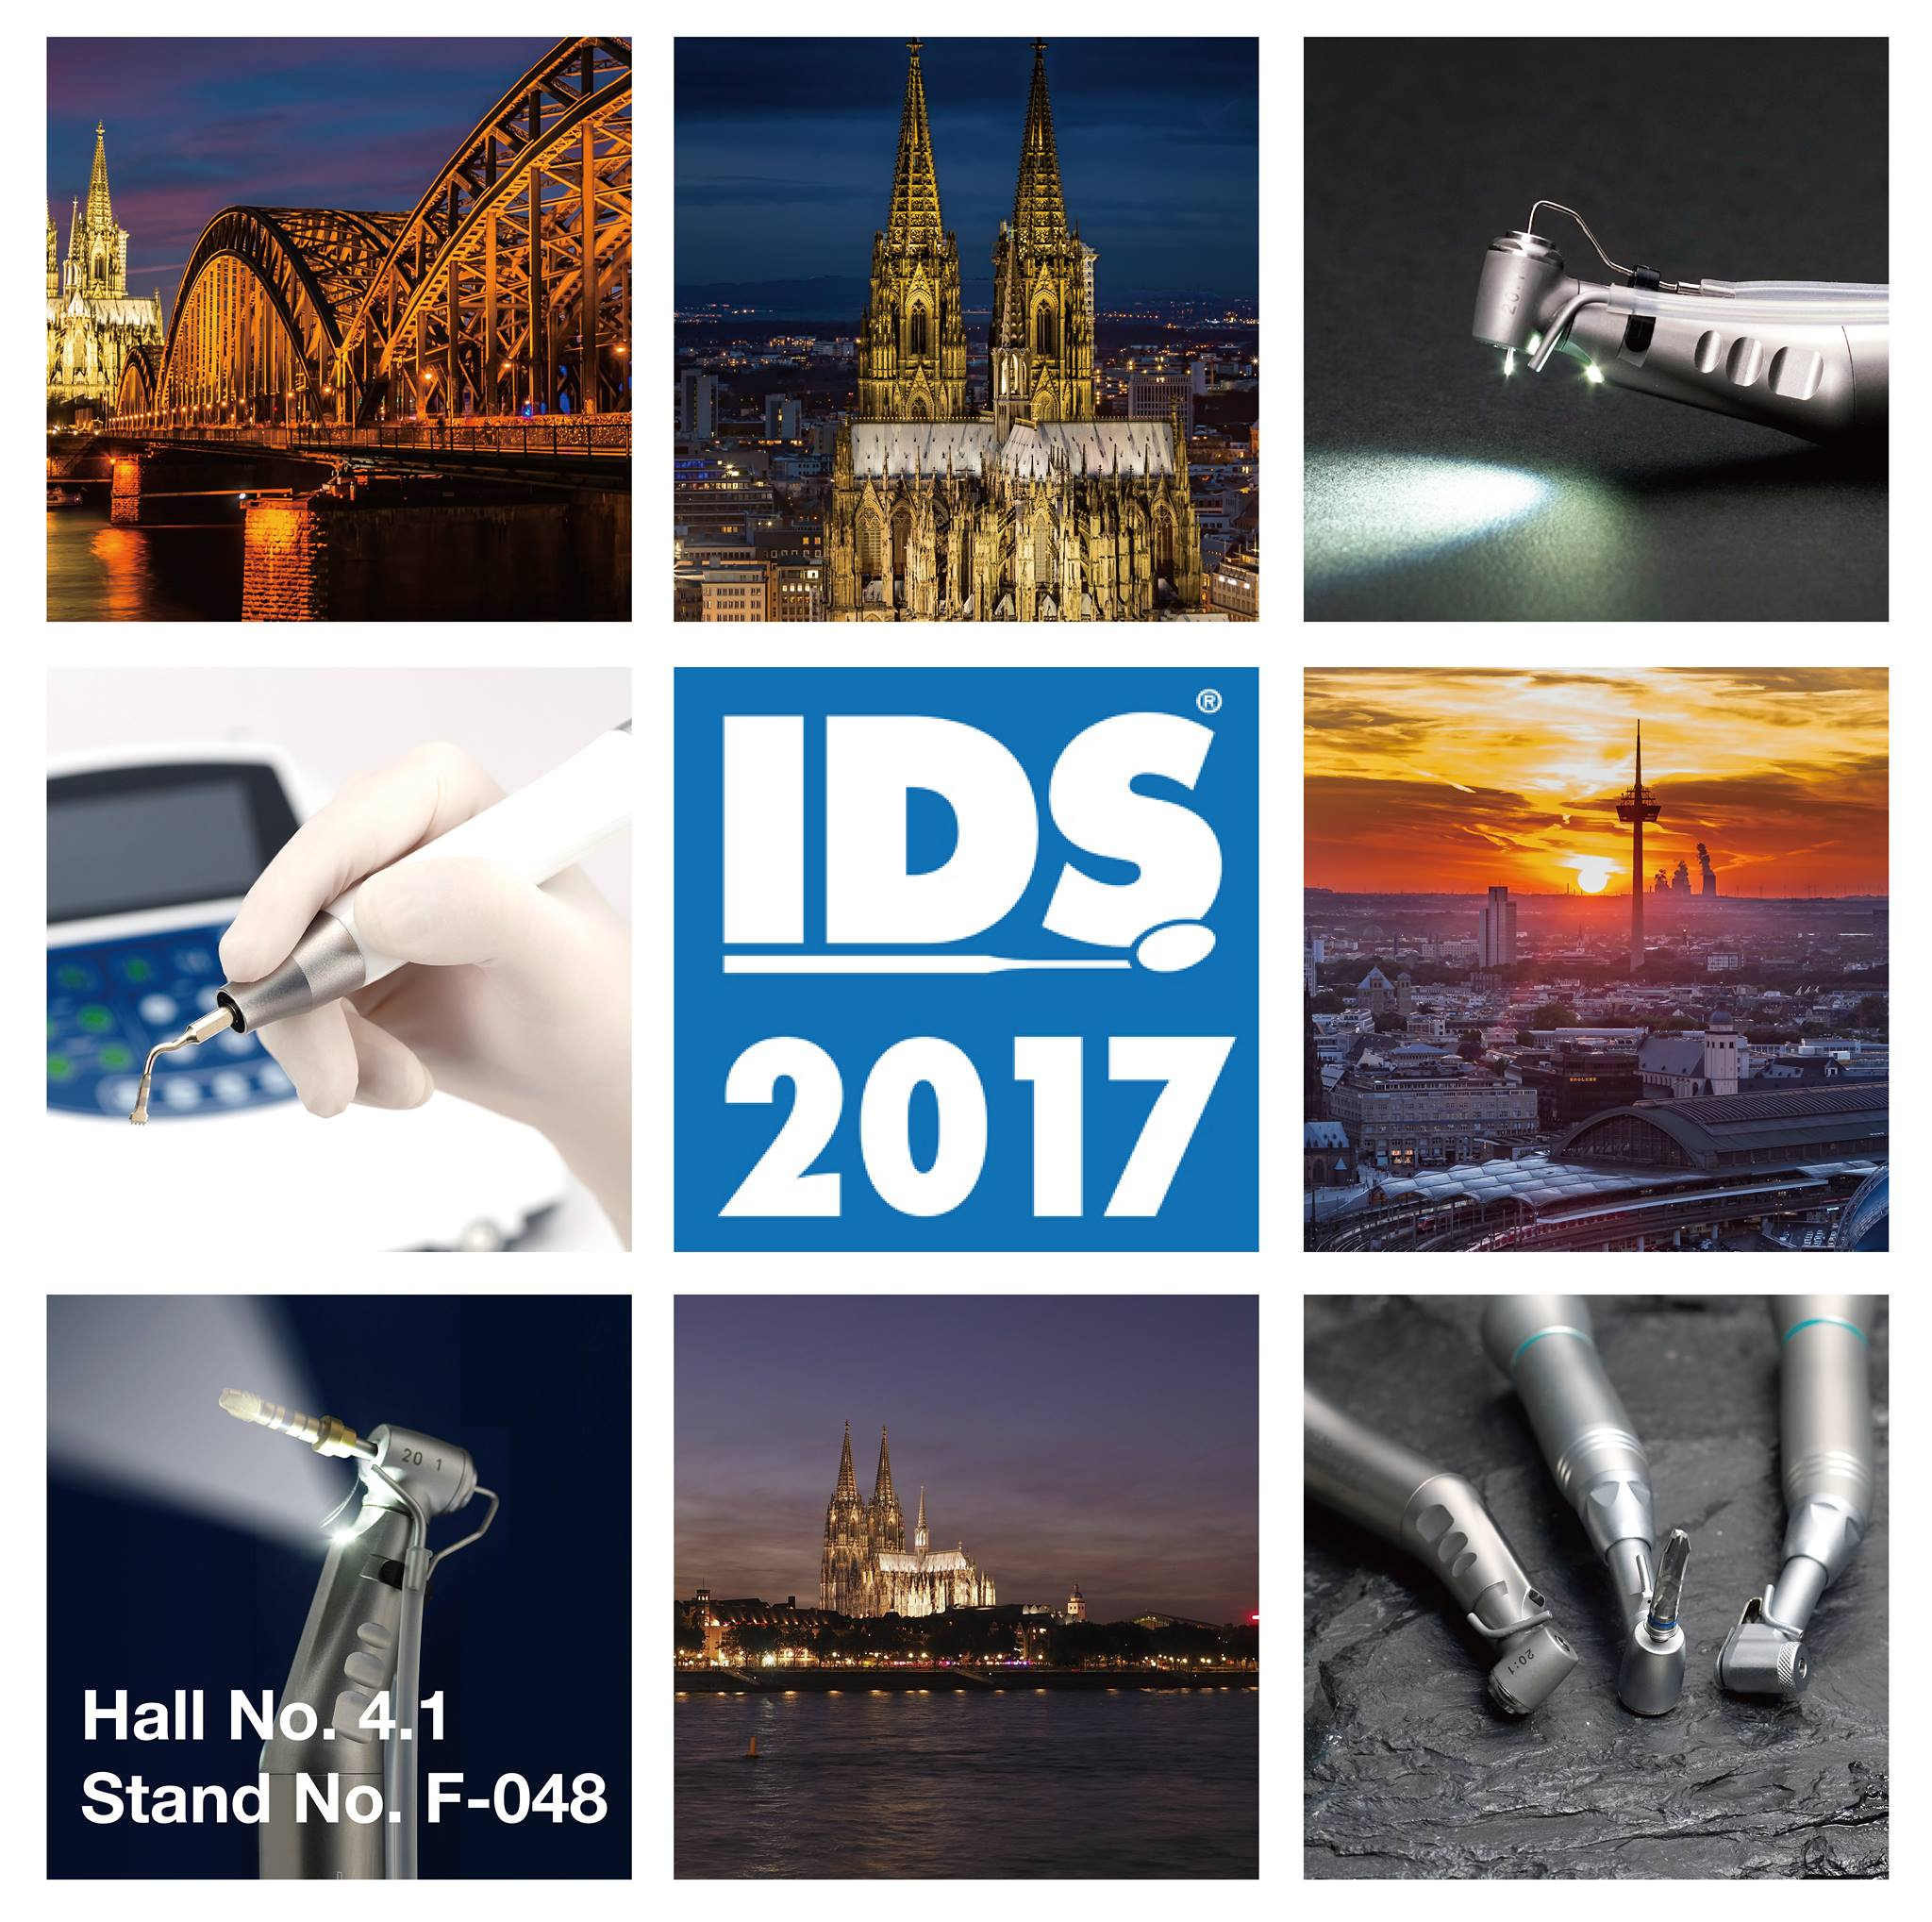 2017 IDS Germany_001.jpg